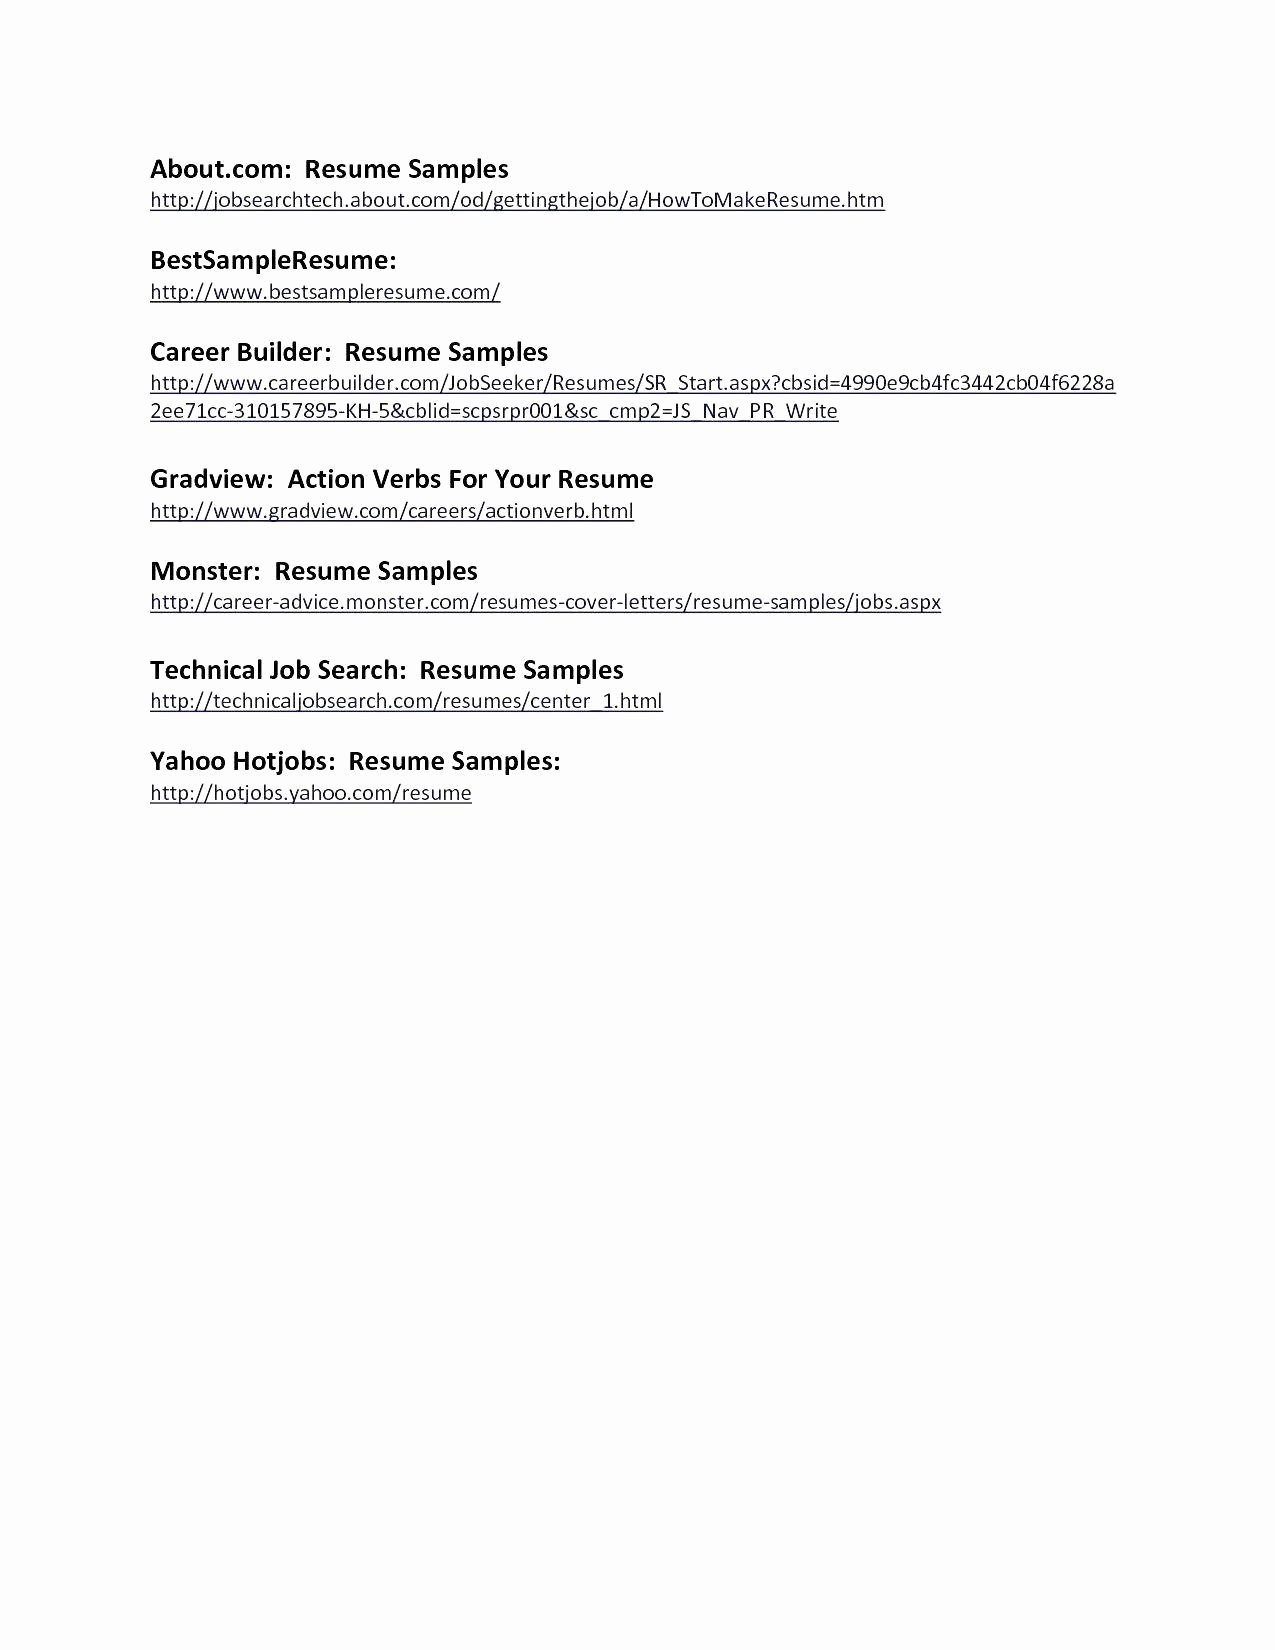 Sample Resumes for College Students - College Student Resume Sample Fresh Resume Example for College